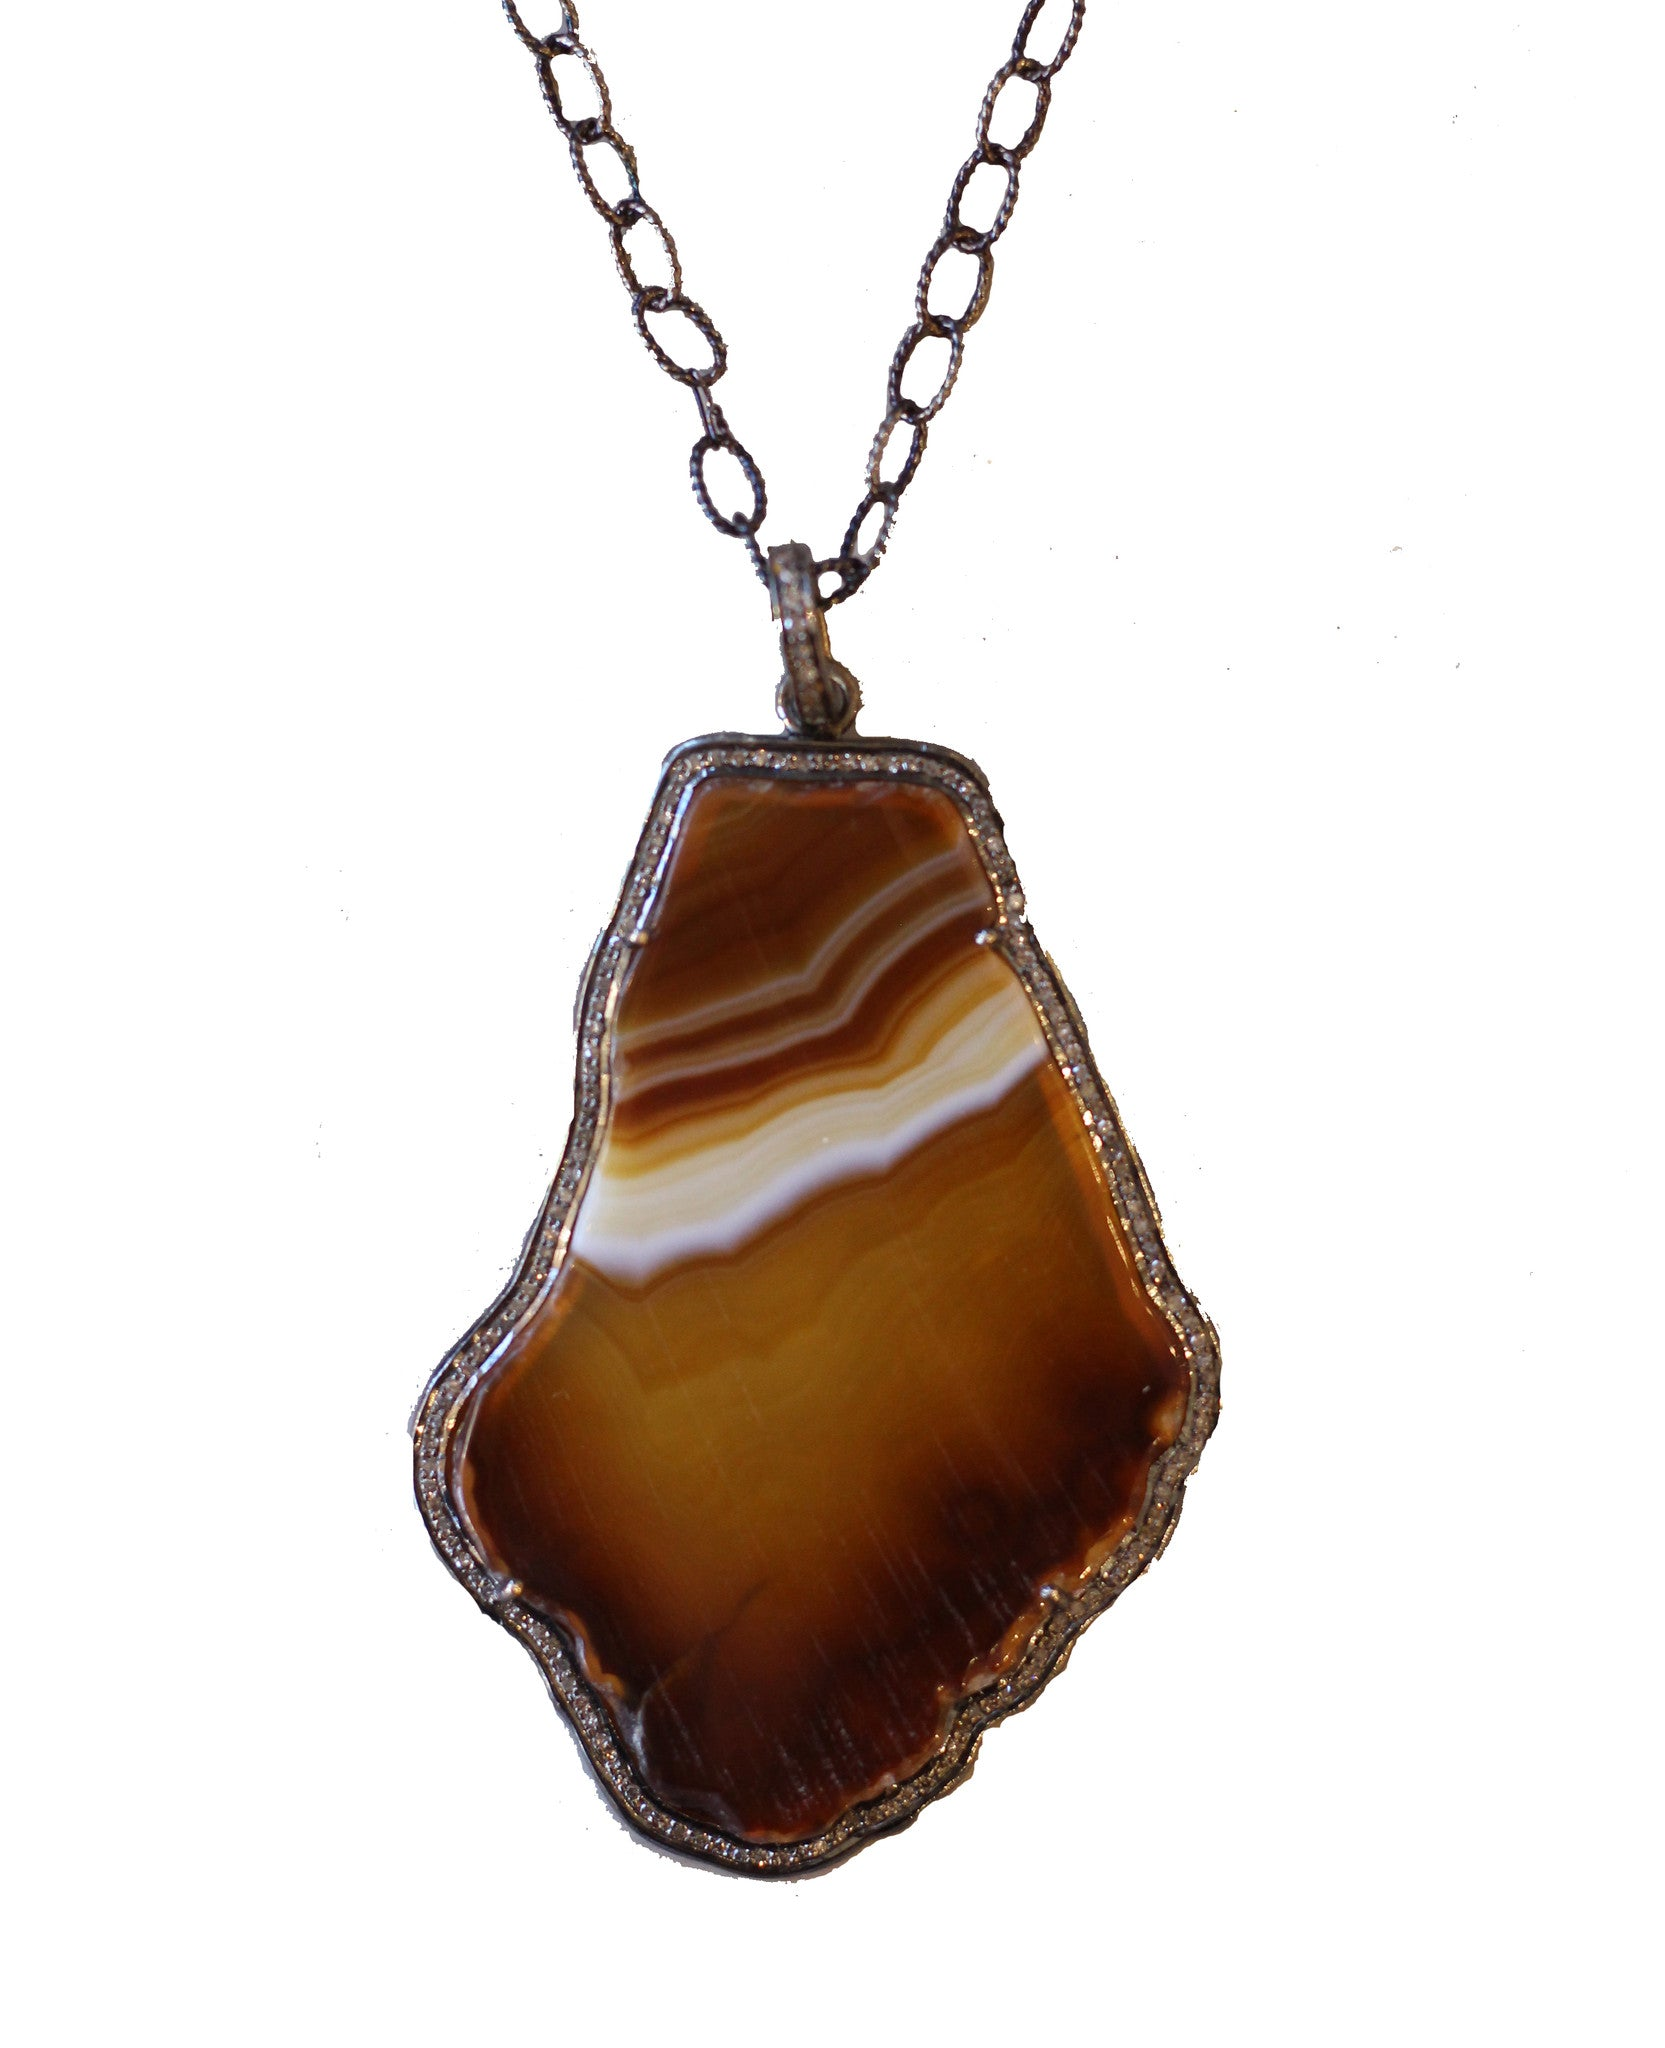 Kz noel agate pendant necklace huff harrington kz noel agate pendant necklace aloadofball Choice Image